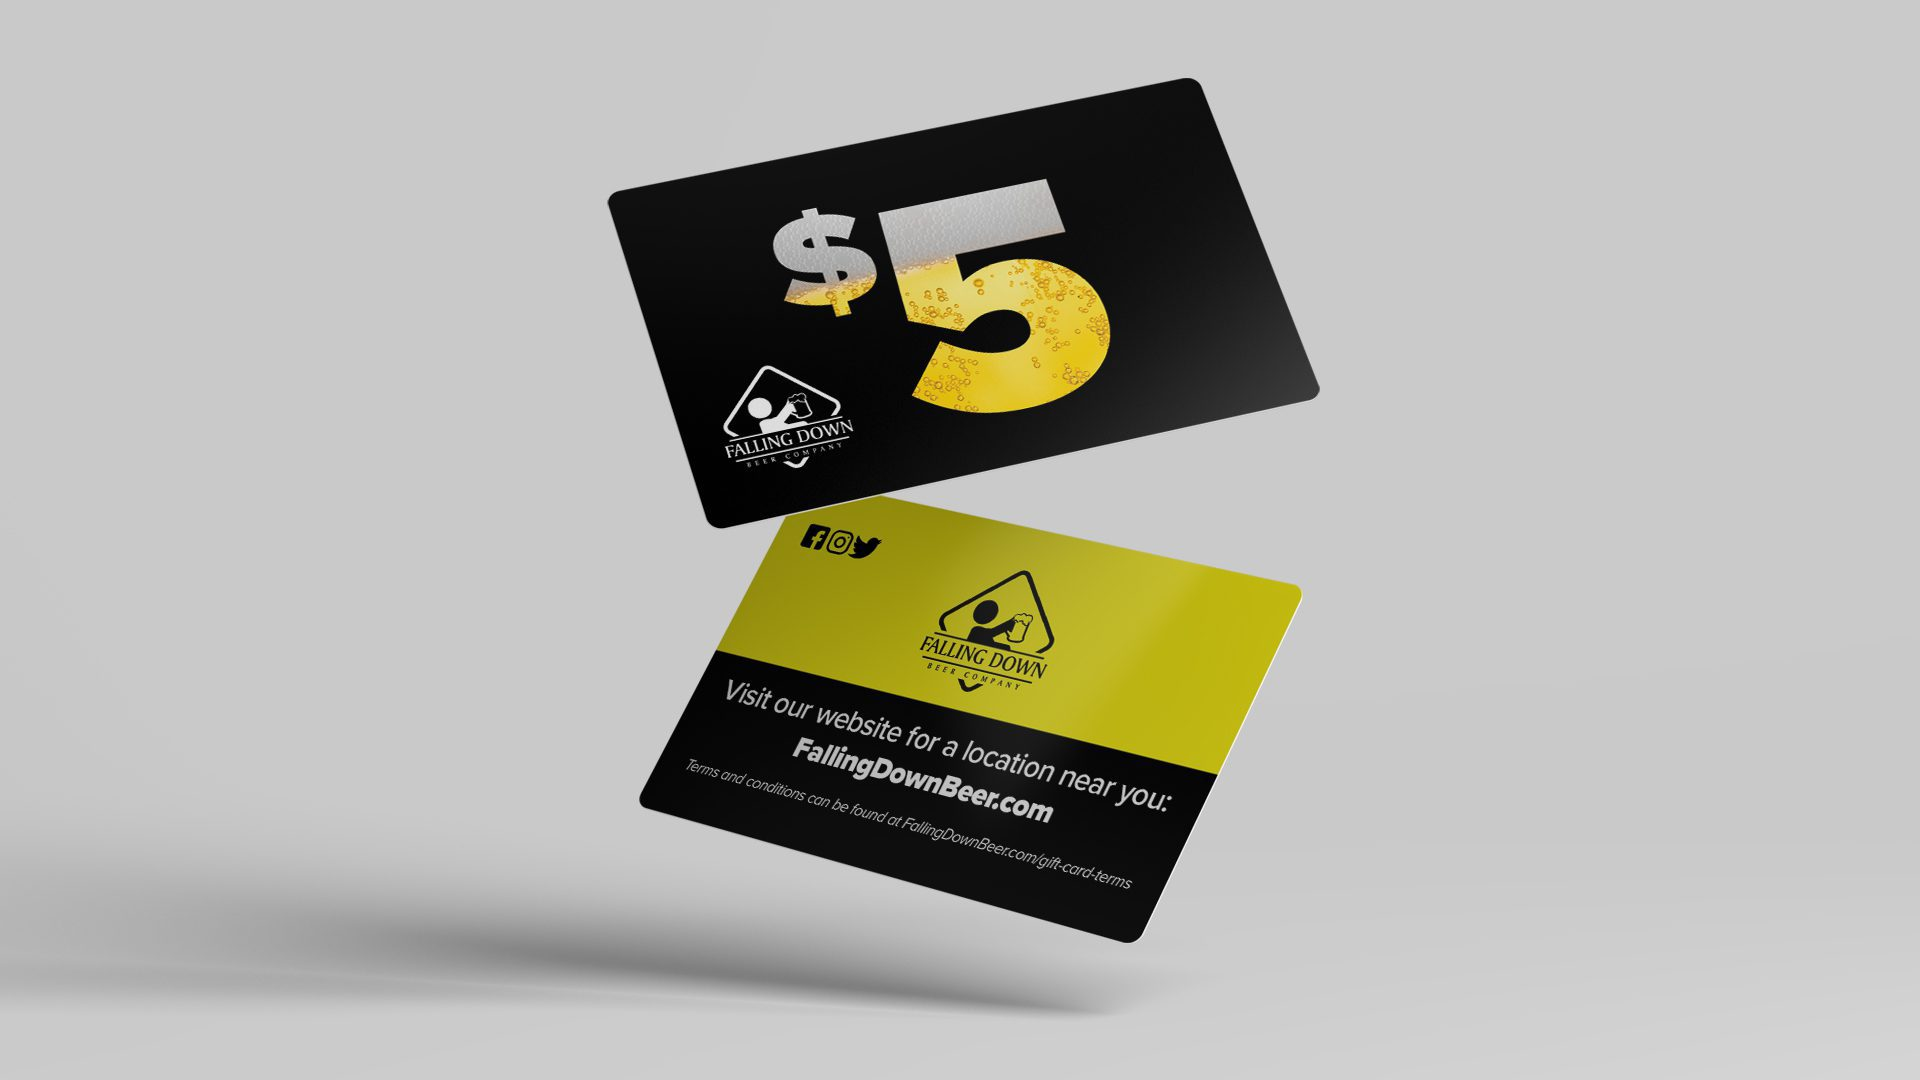 Falling Down Beer Co – Gift Cards Mockup 01